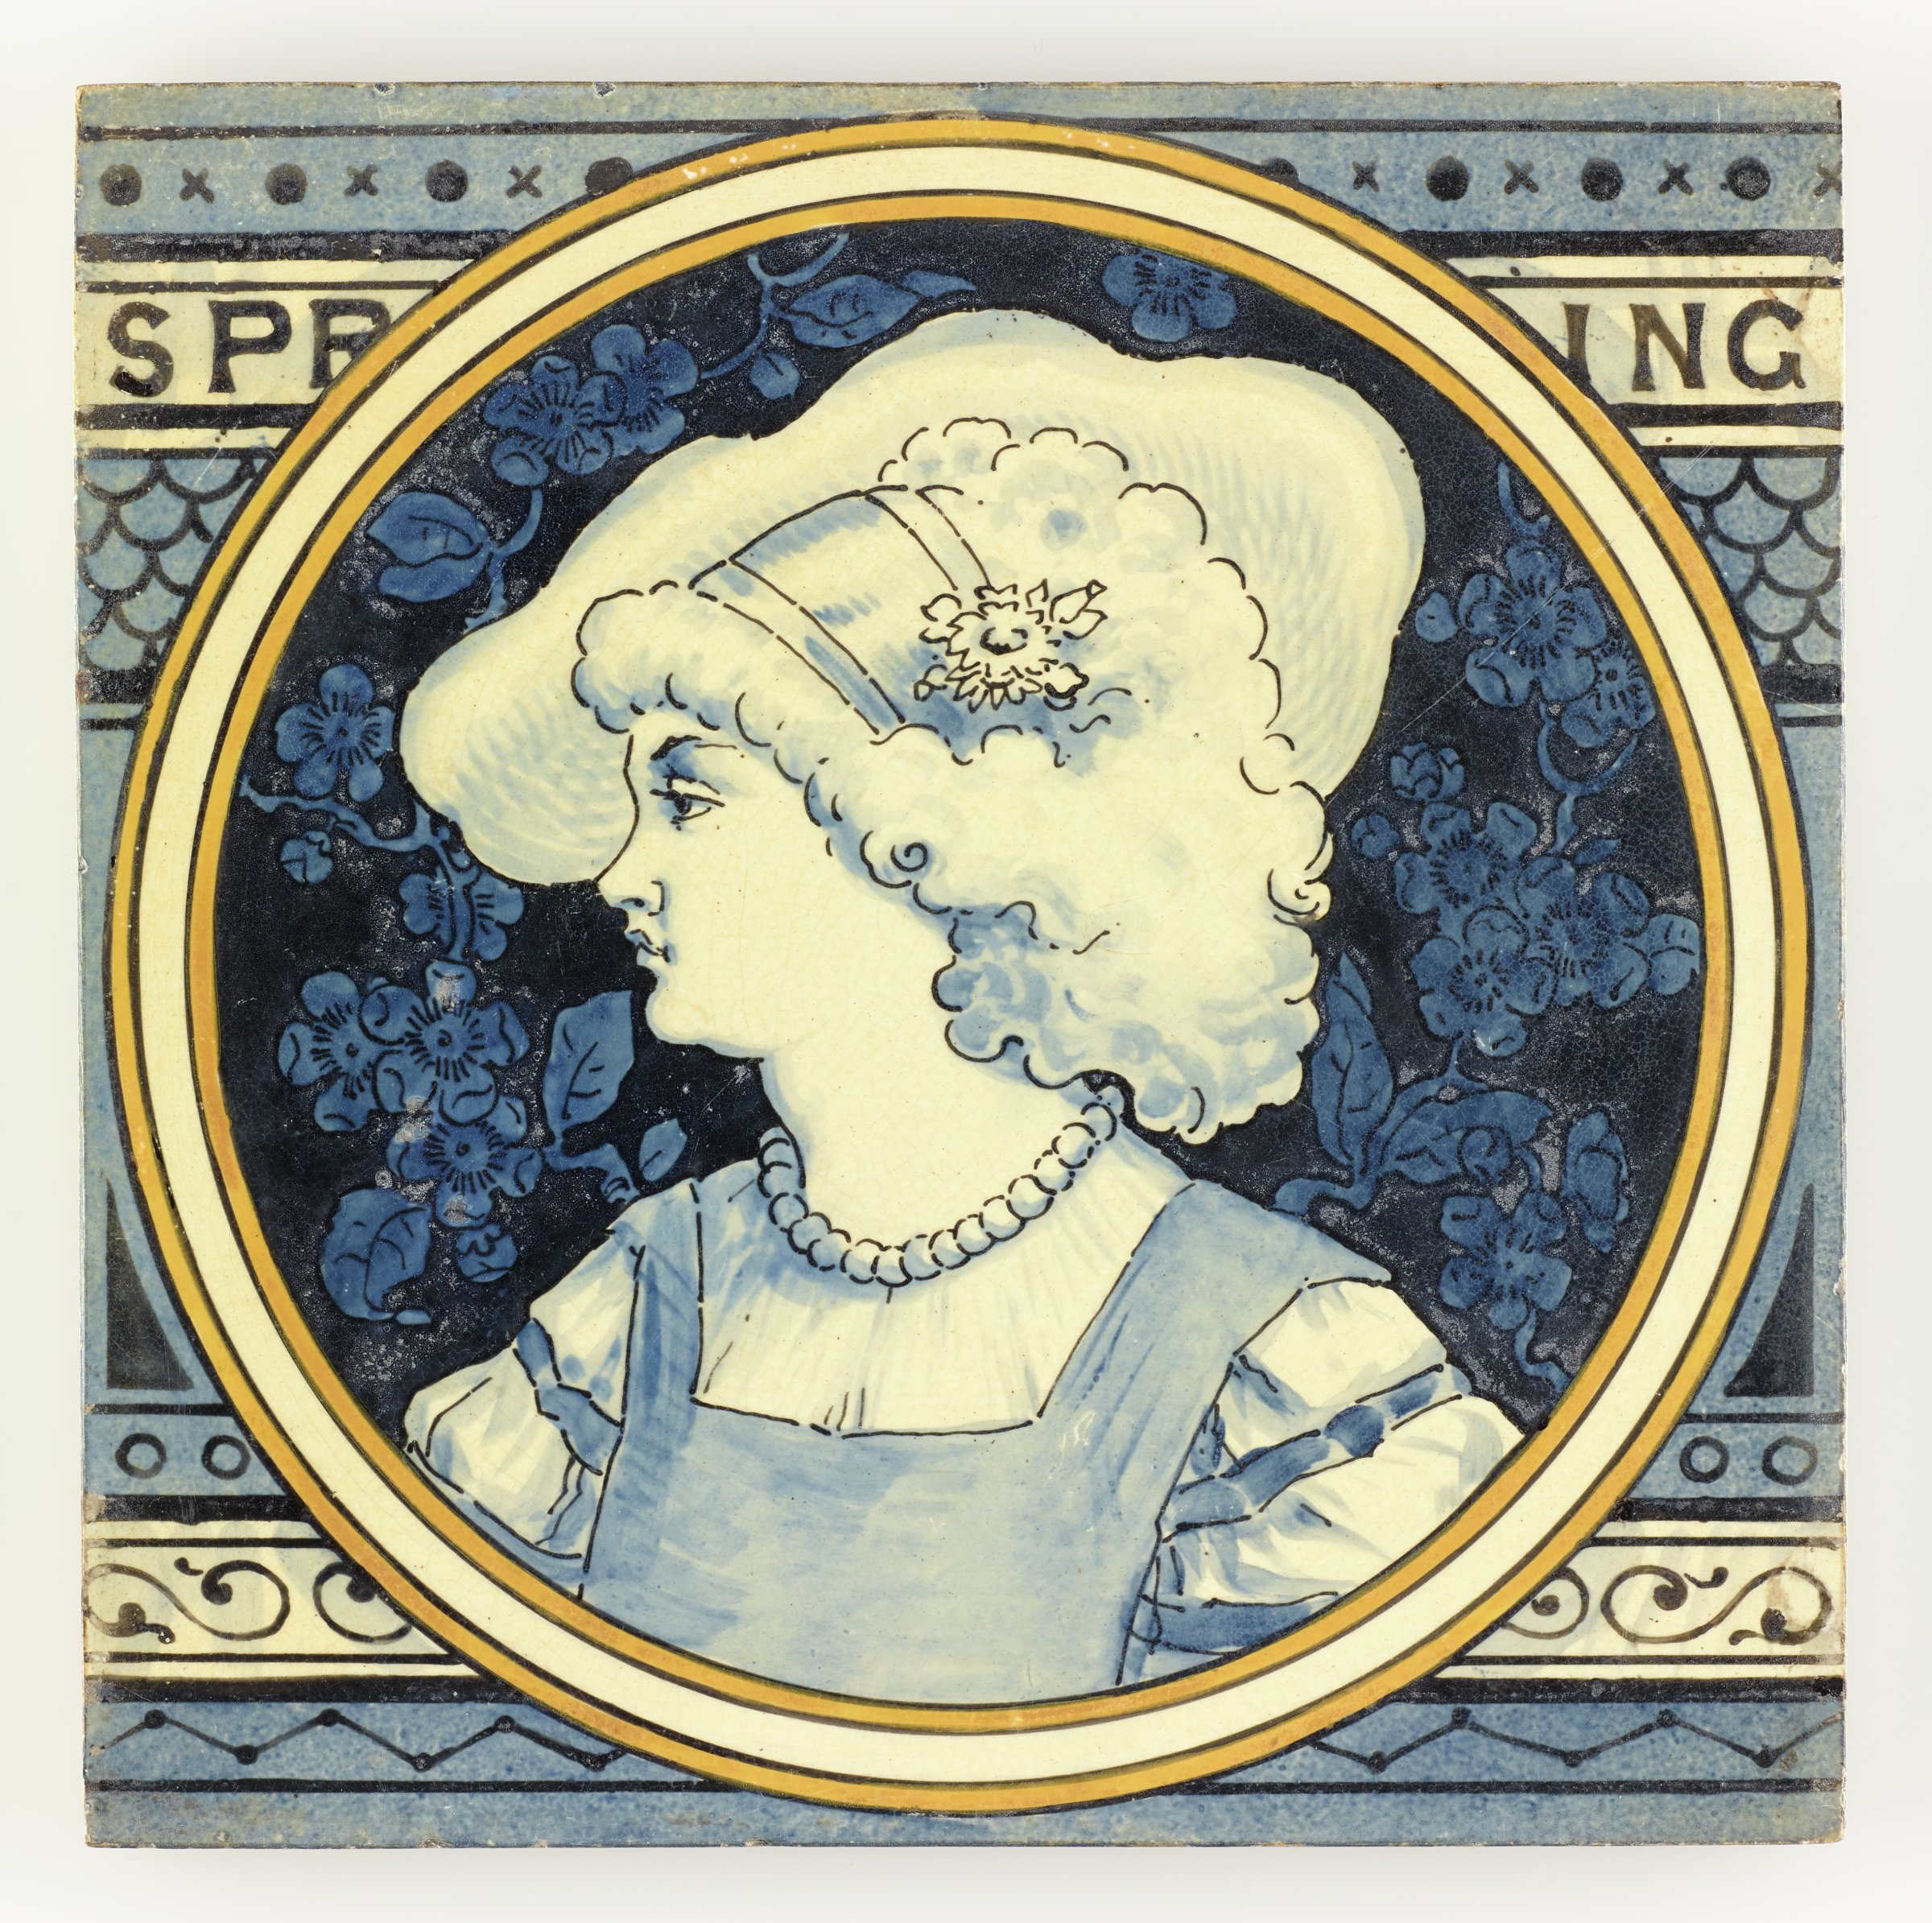 Large, square earthenware tile partially printed and hand-painted with a circular reserve outlined by a white band within two yellow bands containing in white with blue highlights the portrait of a woman to left wearing a light blouse and apron with straw hat and hairband with flower, the ground with a blue on blue design of floral vines, the larger ground of the tile contains in various shades of blue a pattern of decorative, horizontal bands with from the top a band of small x's and solid dots; the name of the season SPR ING; a fish scale pattern; a band of open dots; a band of scrolling motifs; and a band featuring a zigzag design, the reverse with horizontal bars in relief to aid adhesion when setting the tile.